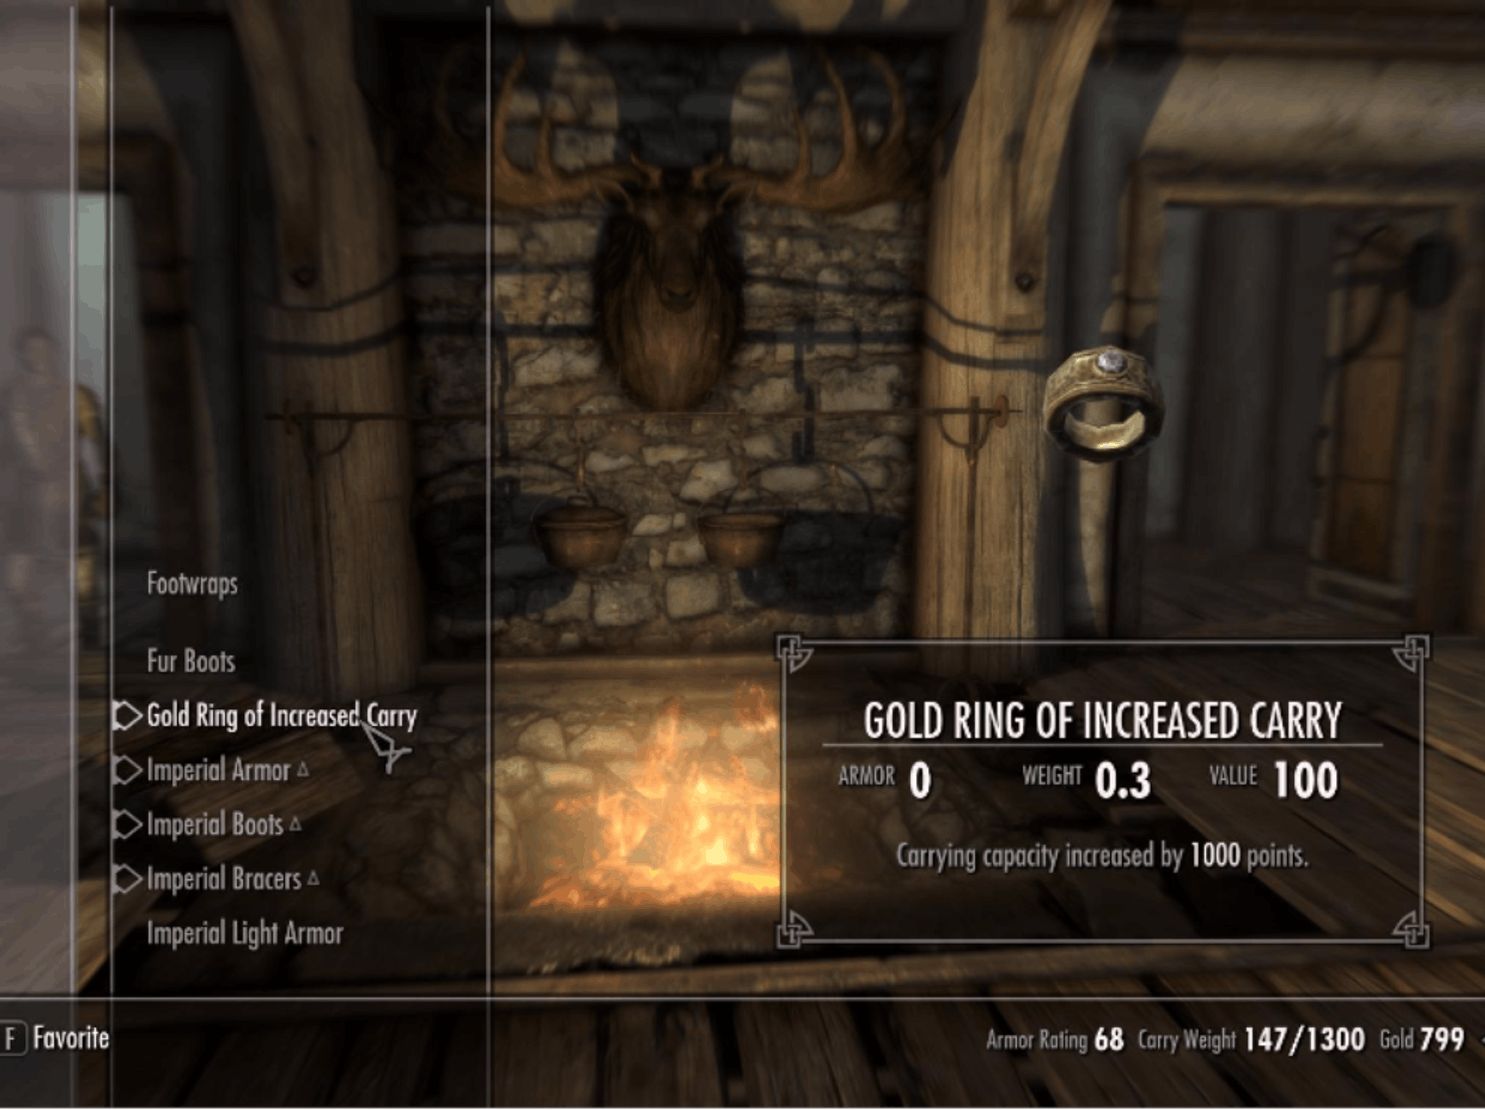 Gold Ring of Increased Carry